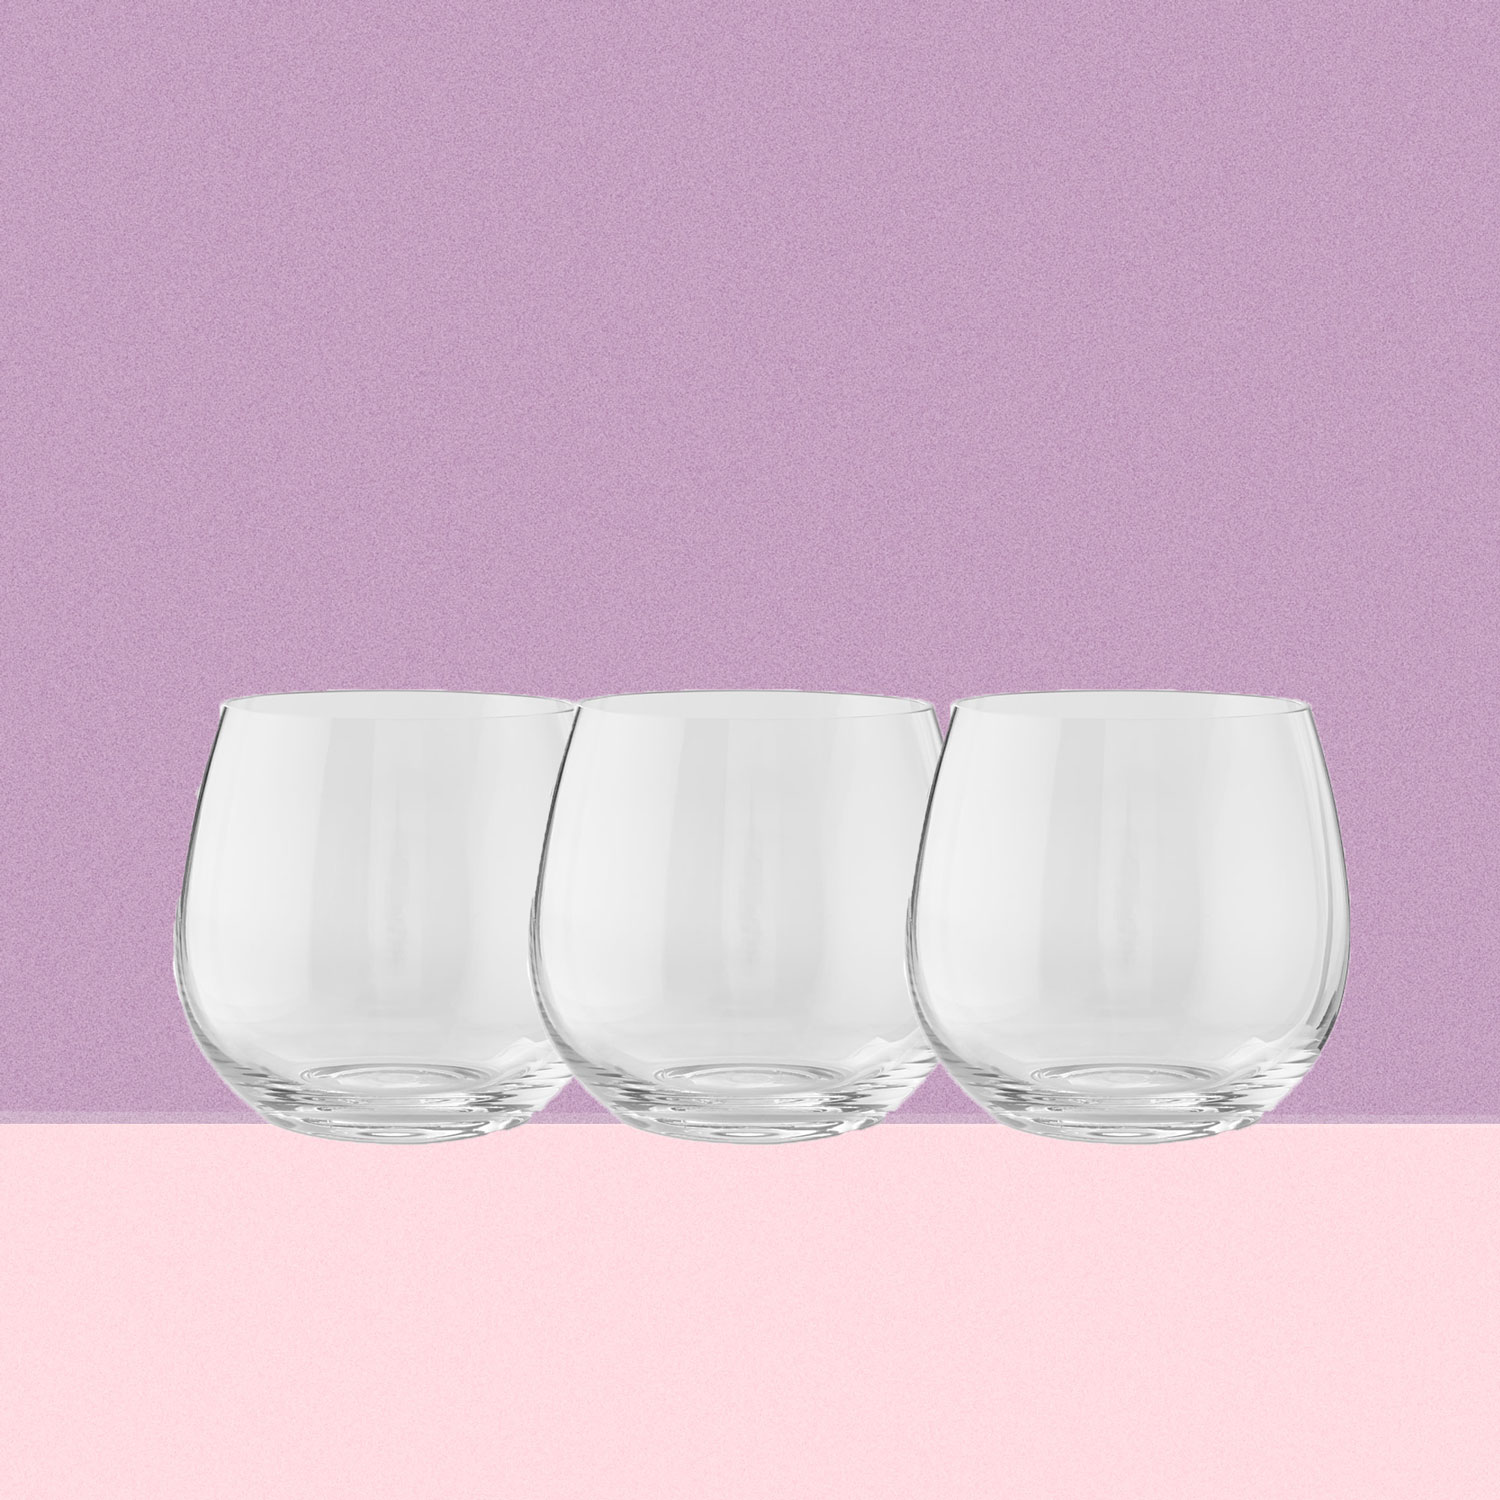 Domaine Shatterproof Outdoor Stemless Wine Glass